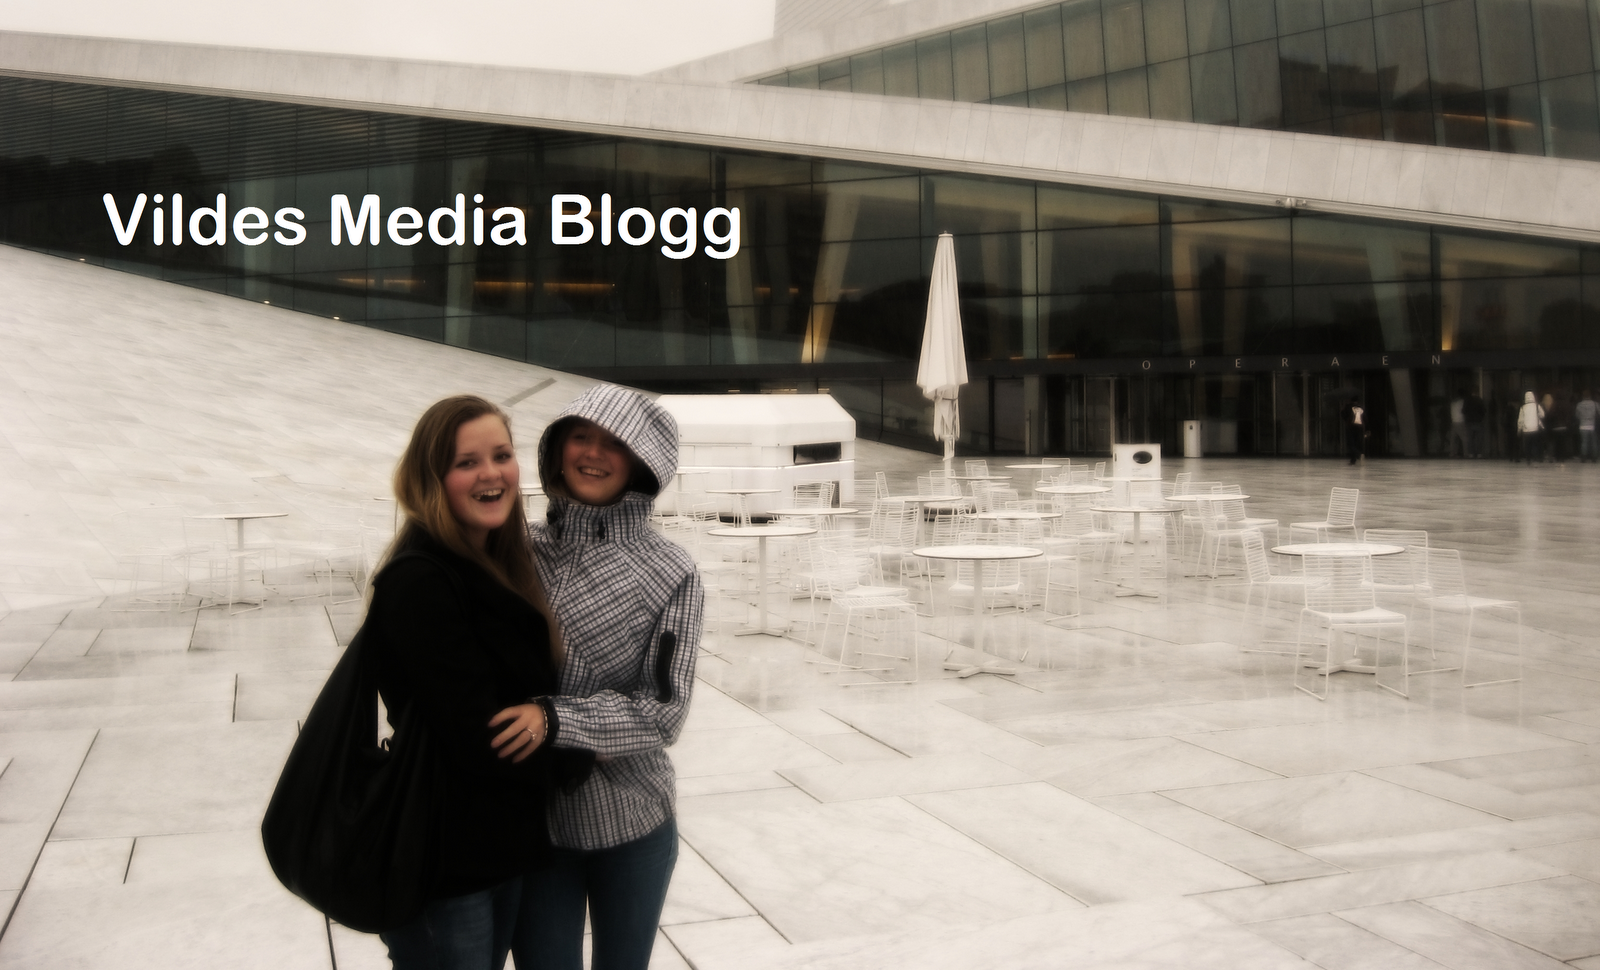 Vildes Media-blogg